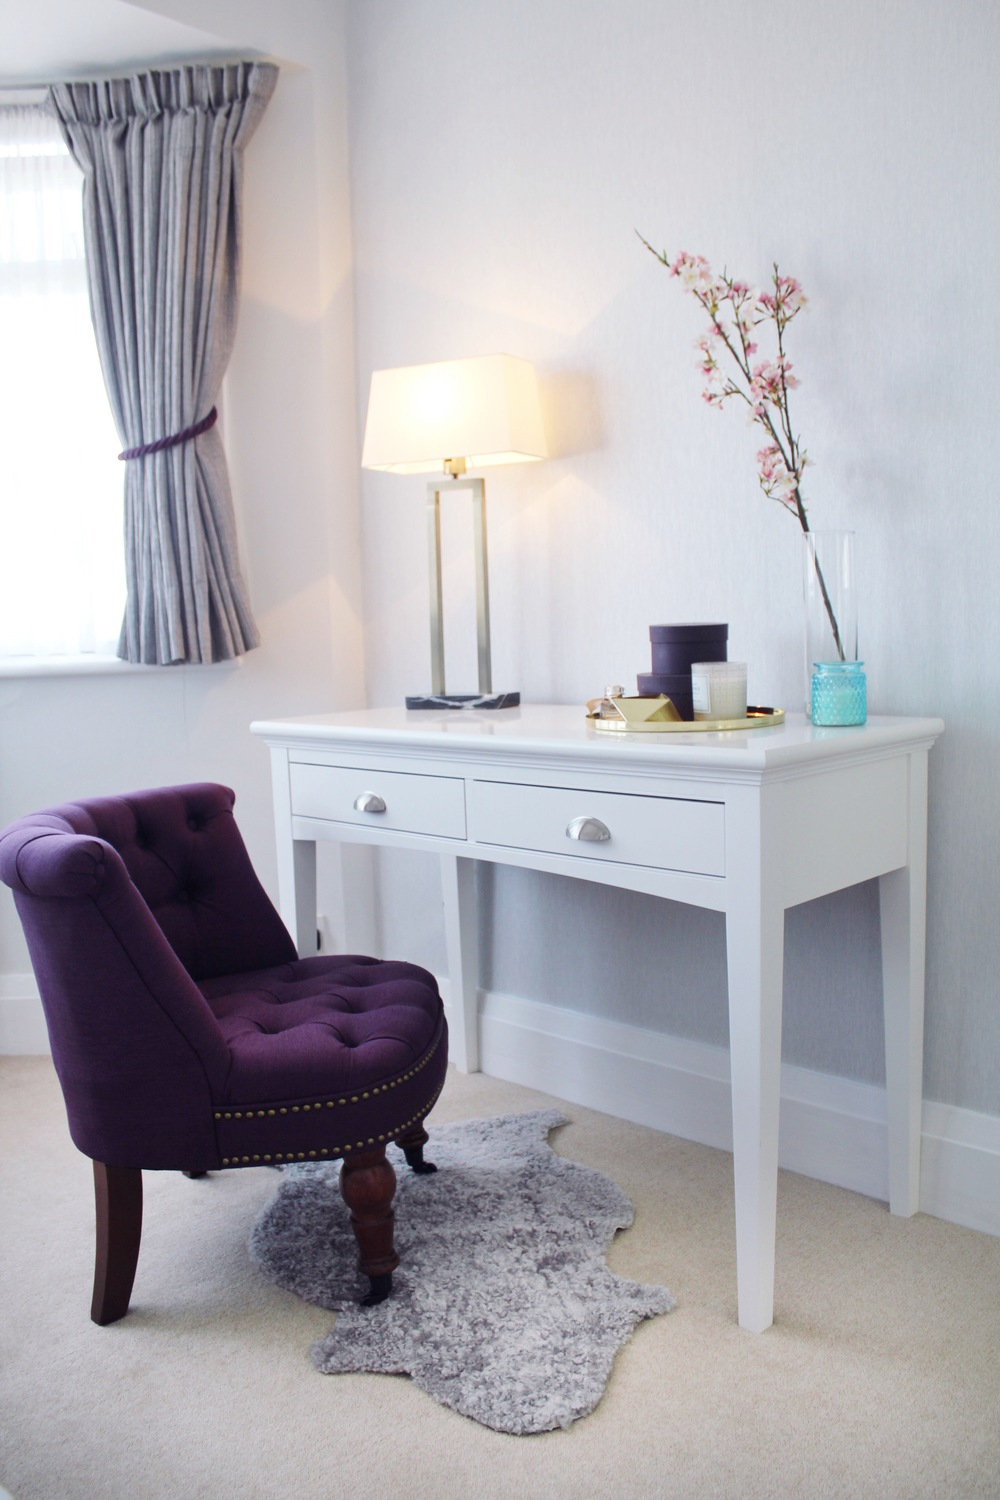 Purple And Grey Bedroom Makeover For My First Interior Design Client Sarah Akwisombe